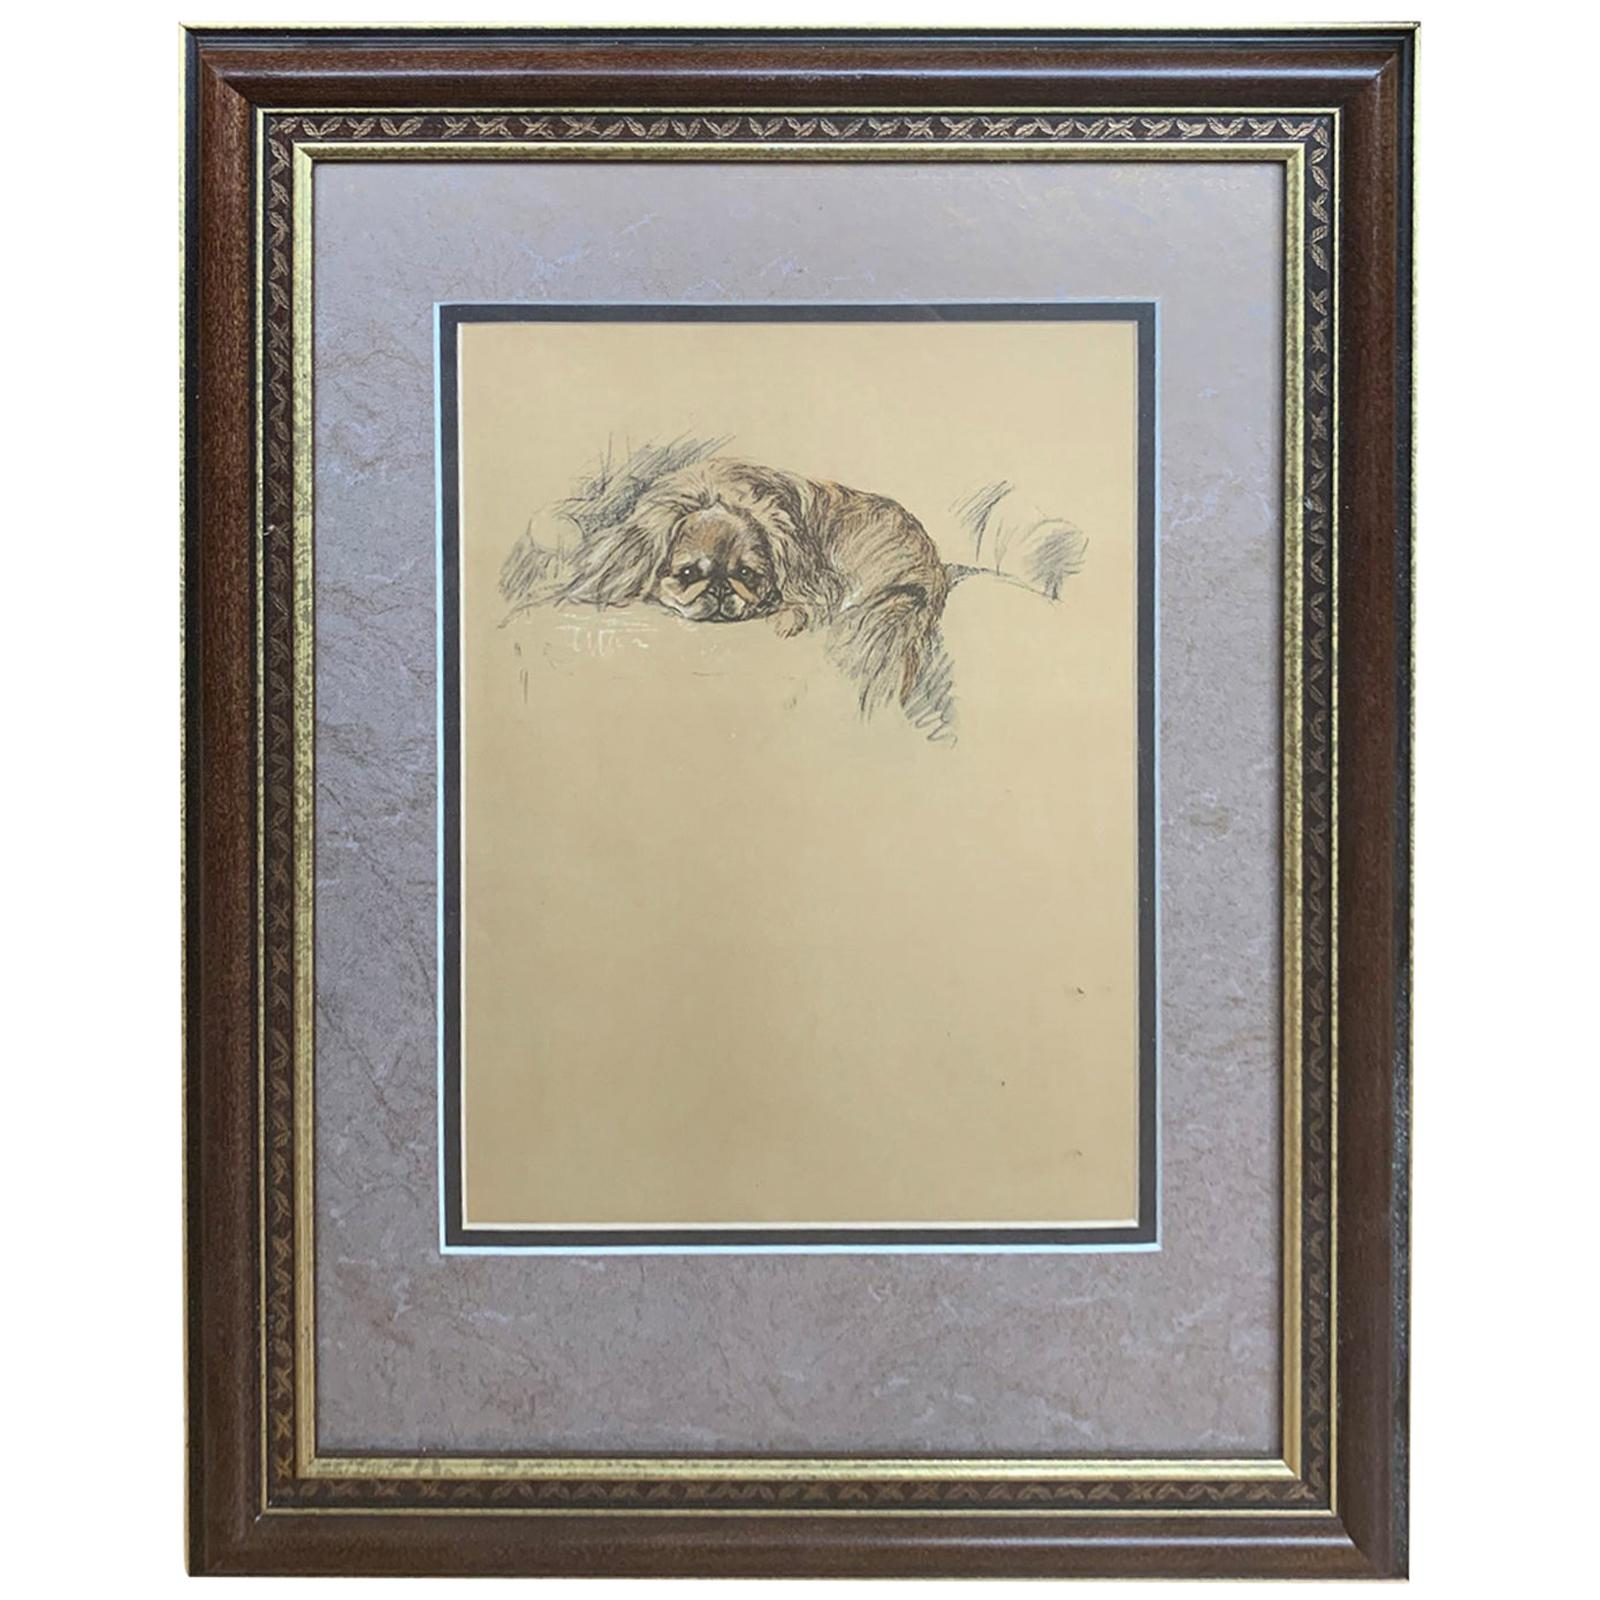 20th Century Engraving of Pekingese in Giltwood Frame, Unsigned